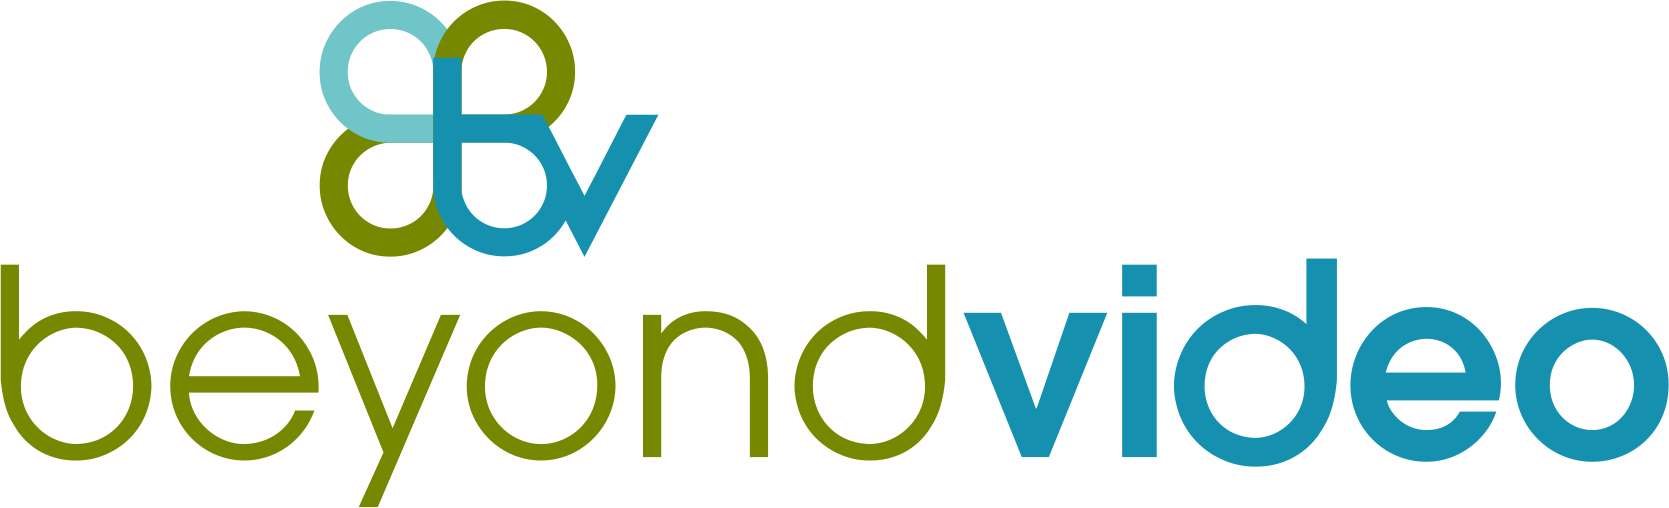 April Business of the Month: Beyond Video